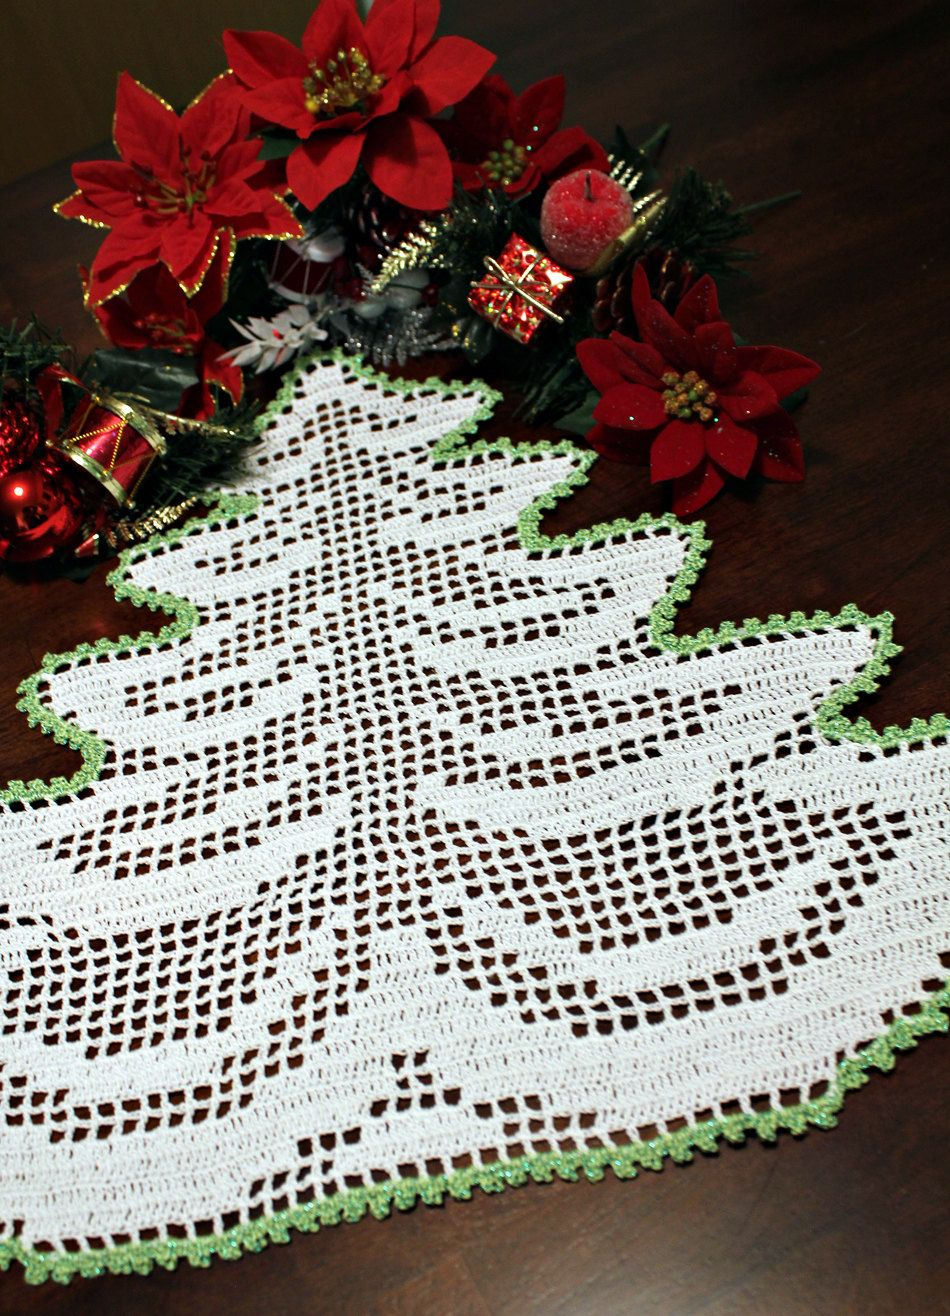 Holiday Tree Crochet Doily 2 Crochet Christmas Trees Holiday Tree Crochet Doilies